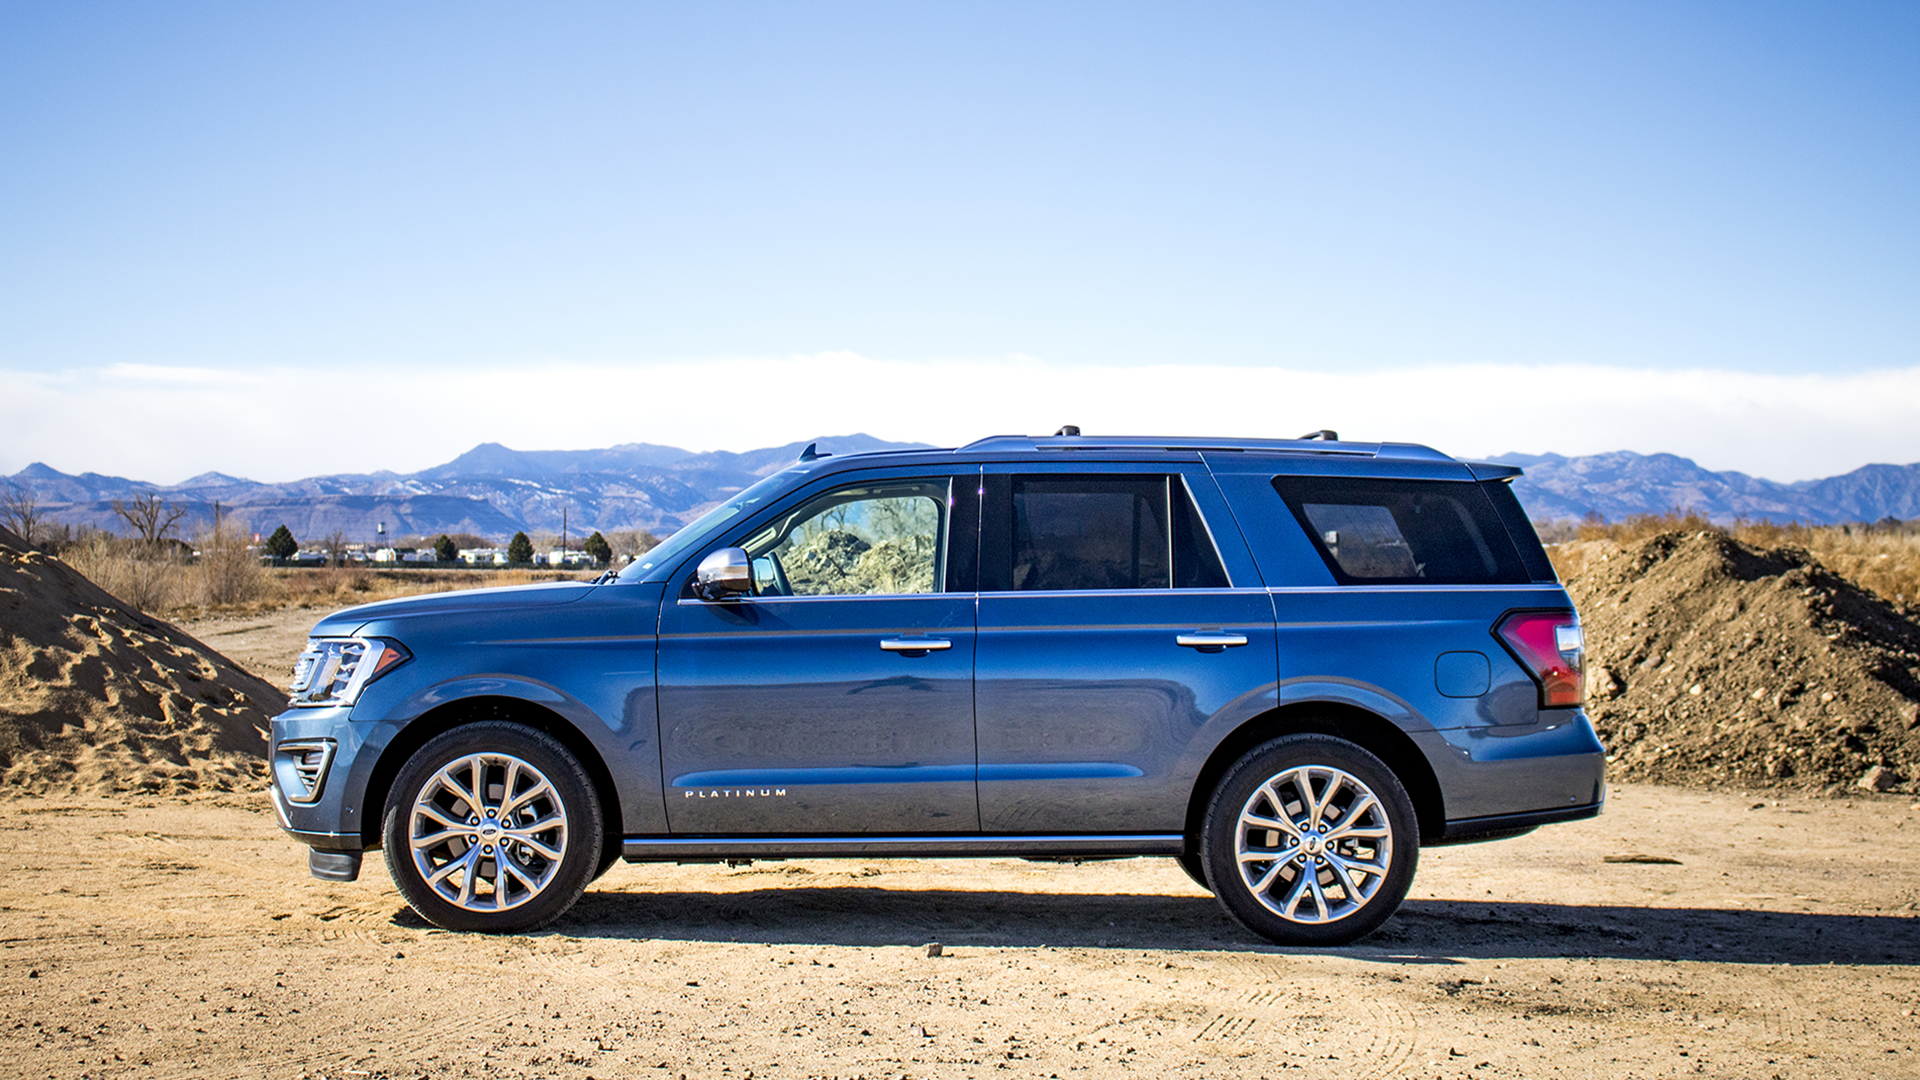 2018 Ford Expedition Platinum Test Drive Review: The New